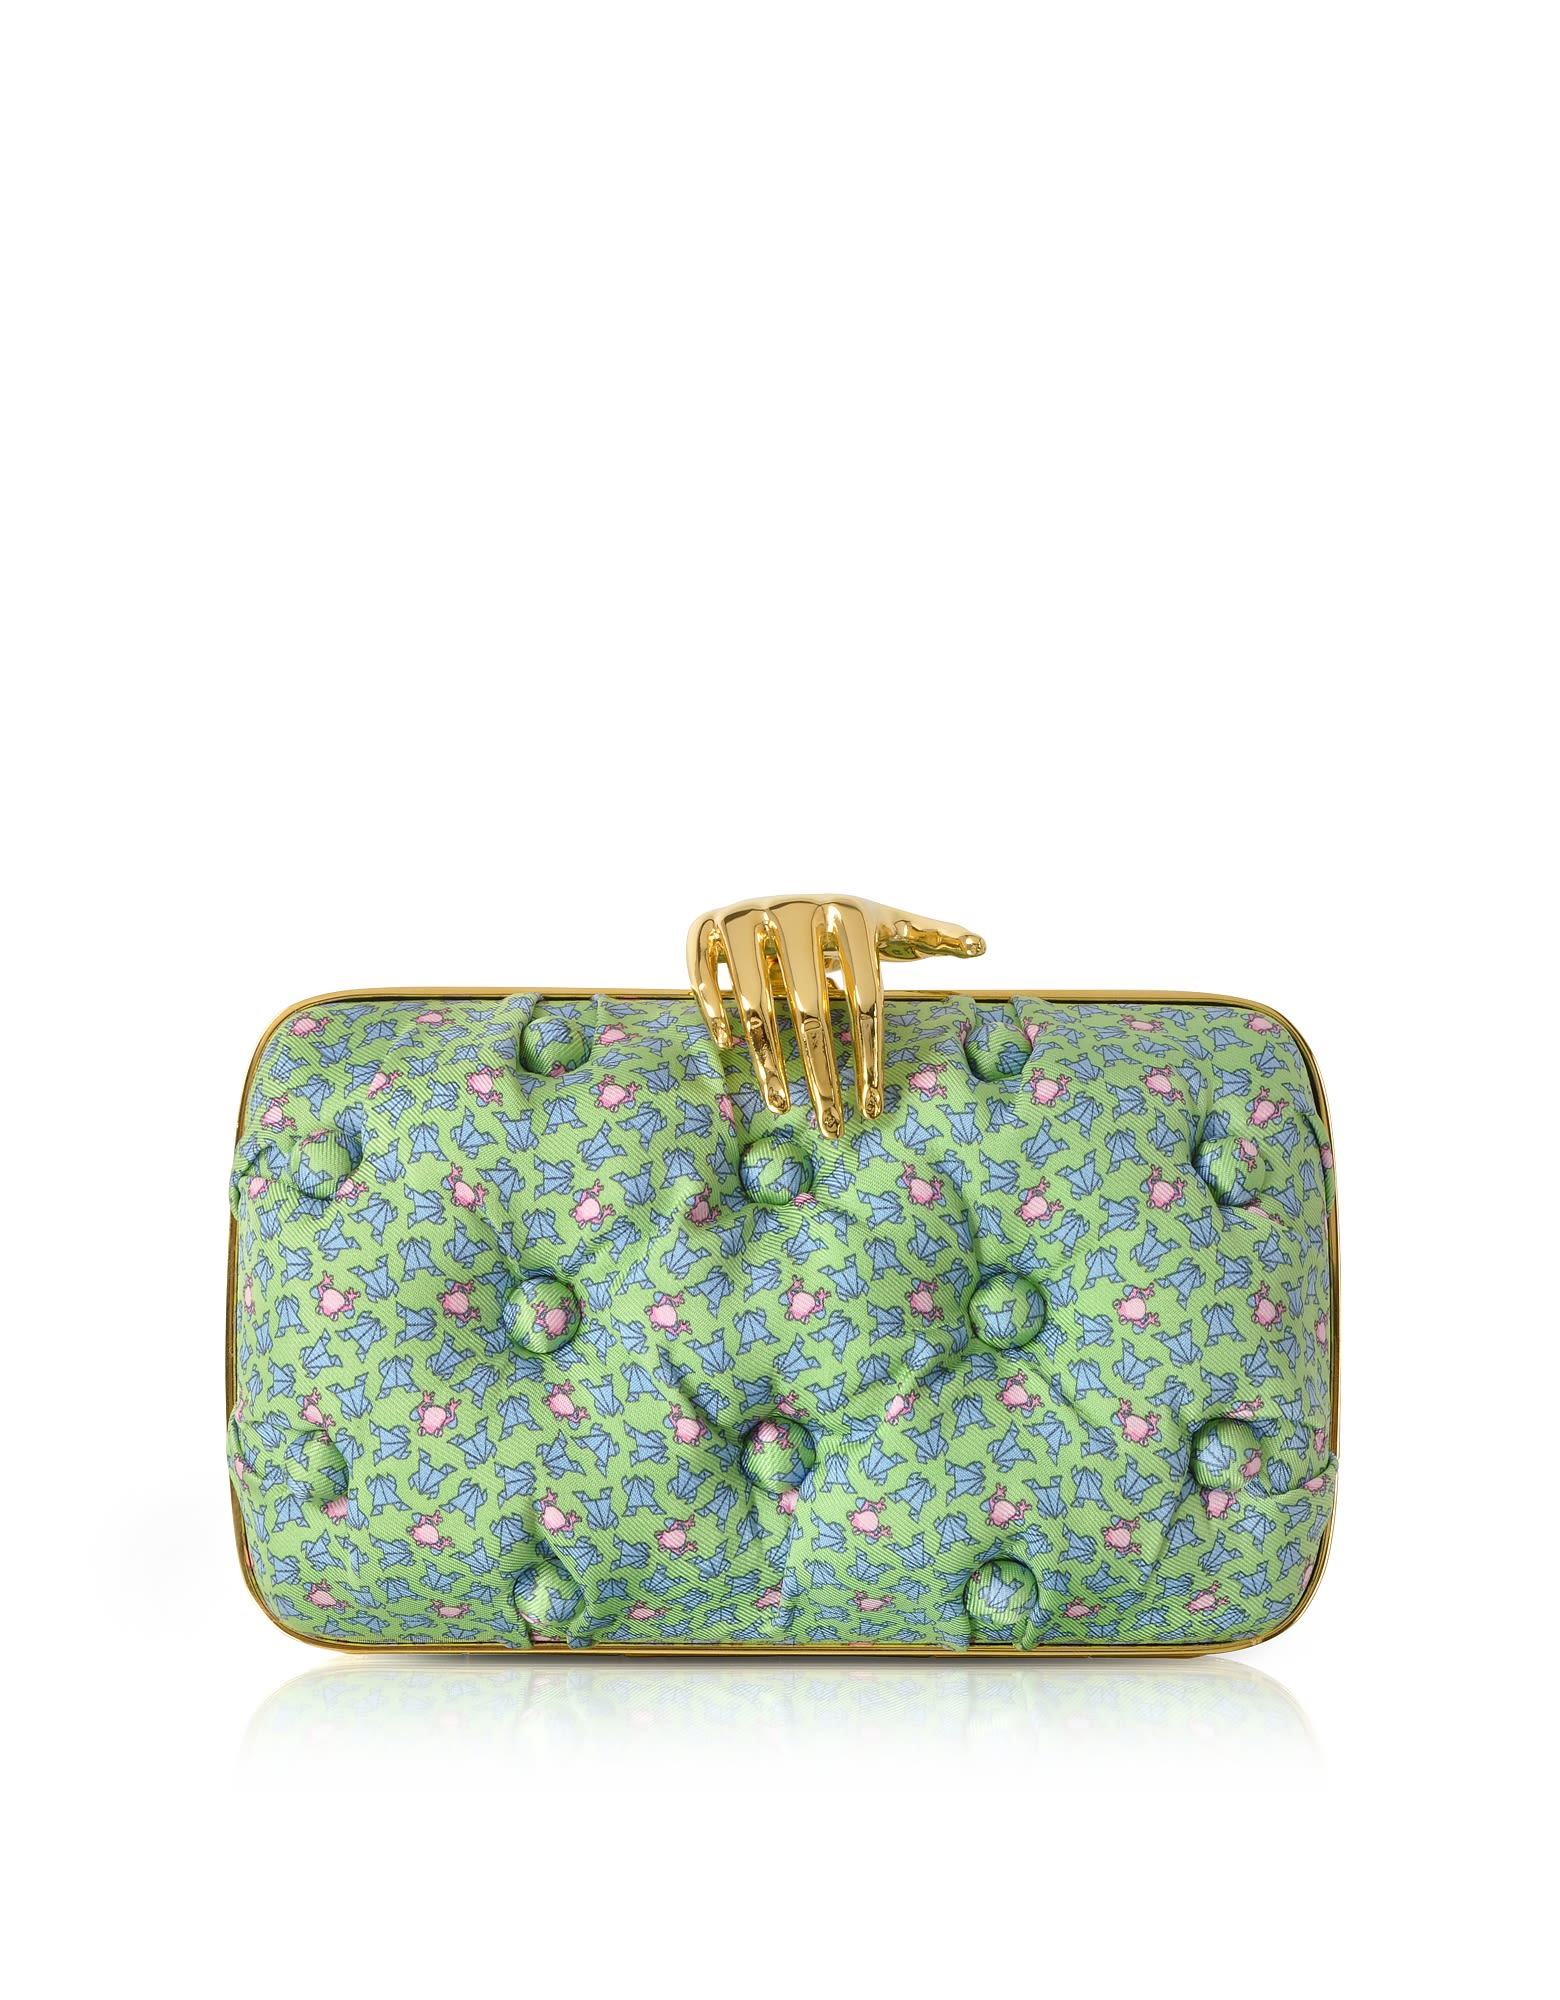 Benedetta Bruzziches FROGS PRINTED GREEN SATIN SILK CARMEN CLUTCH W/ GOLDEN HAND